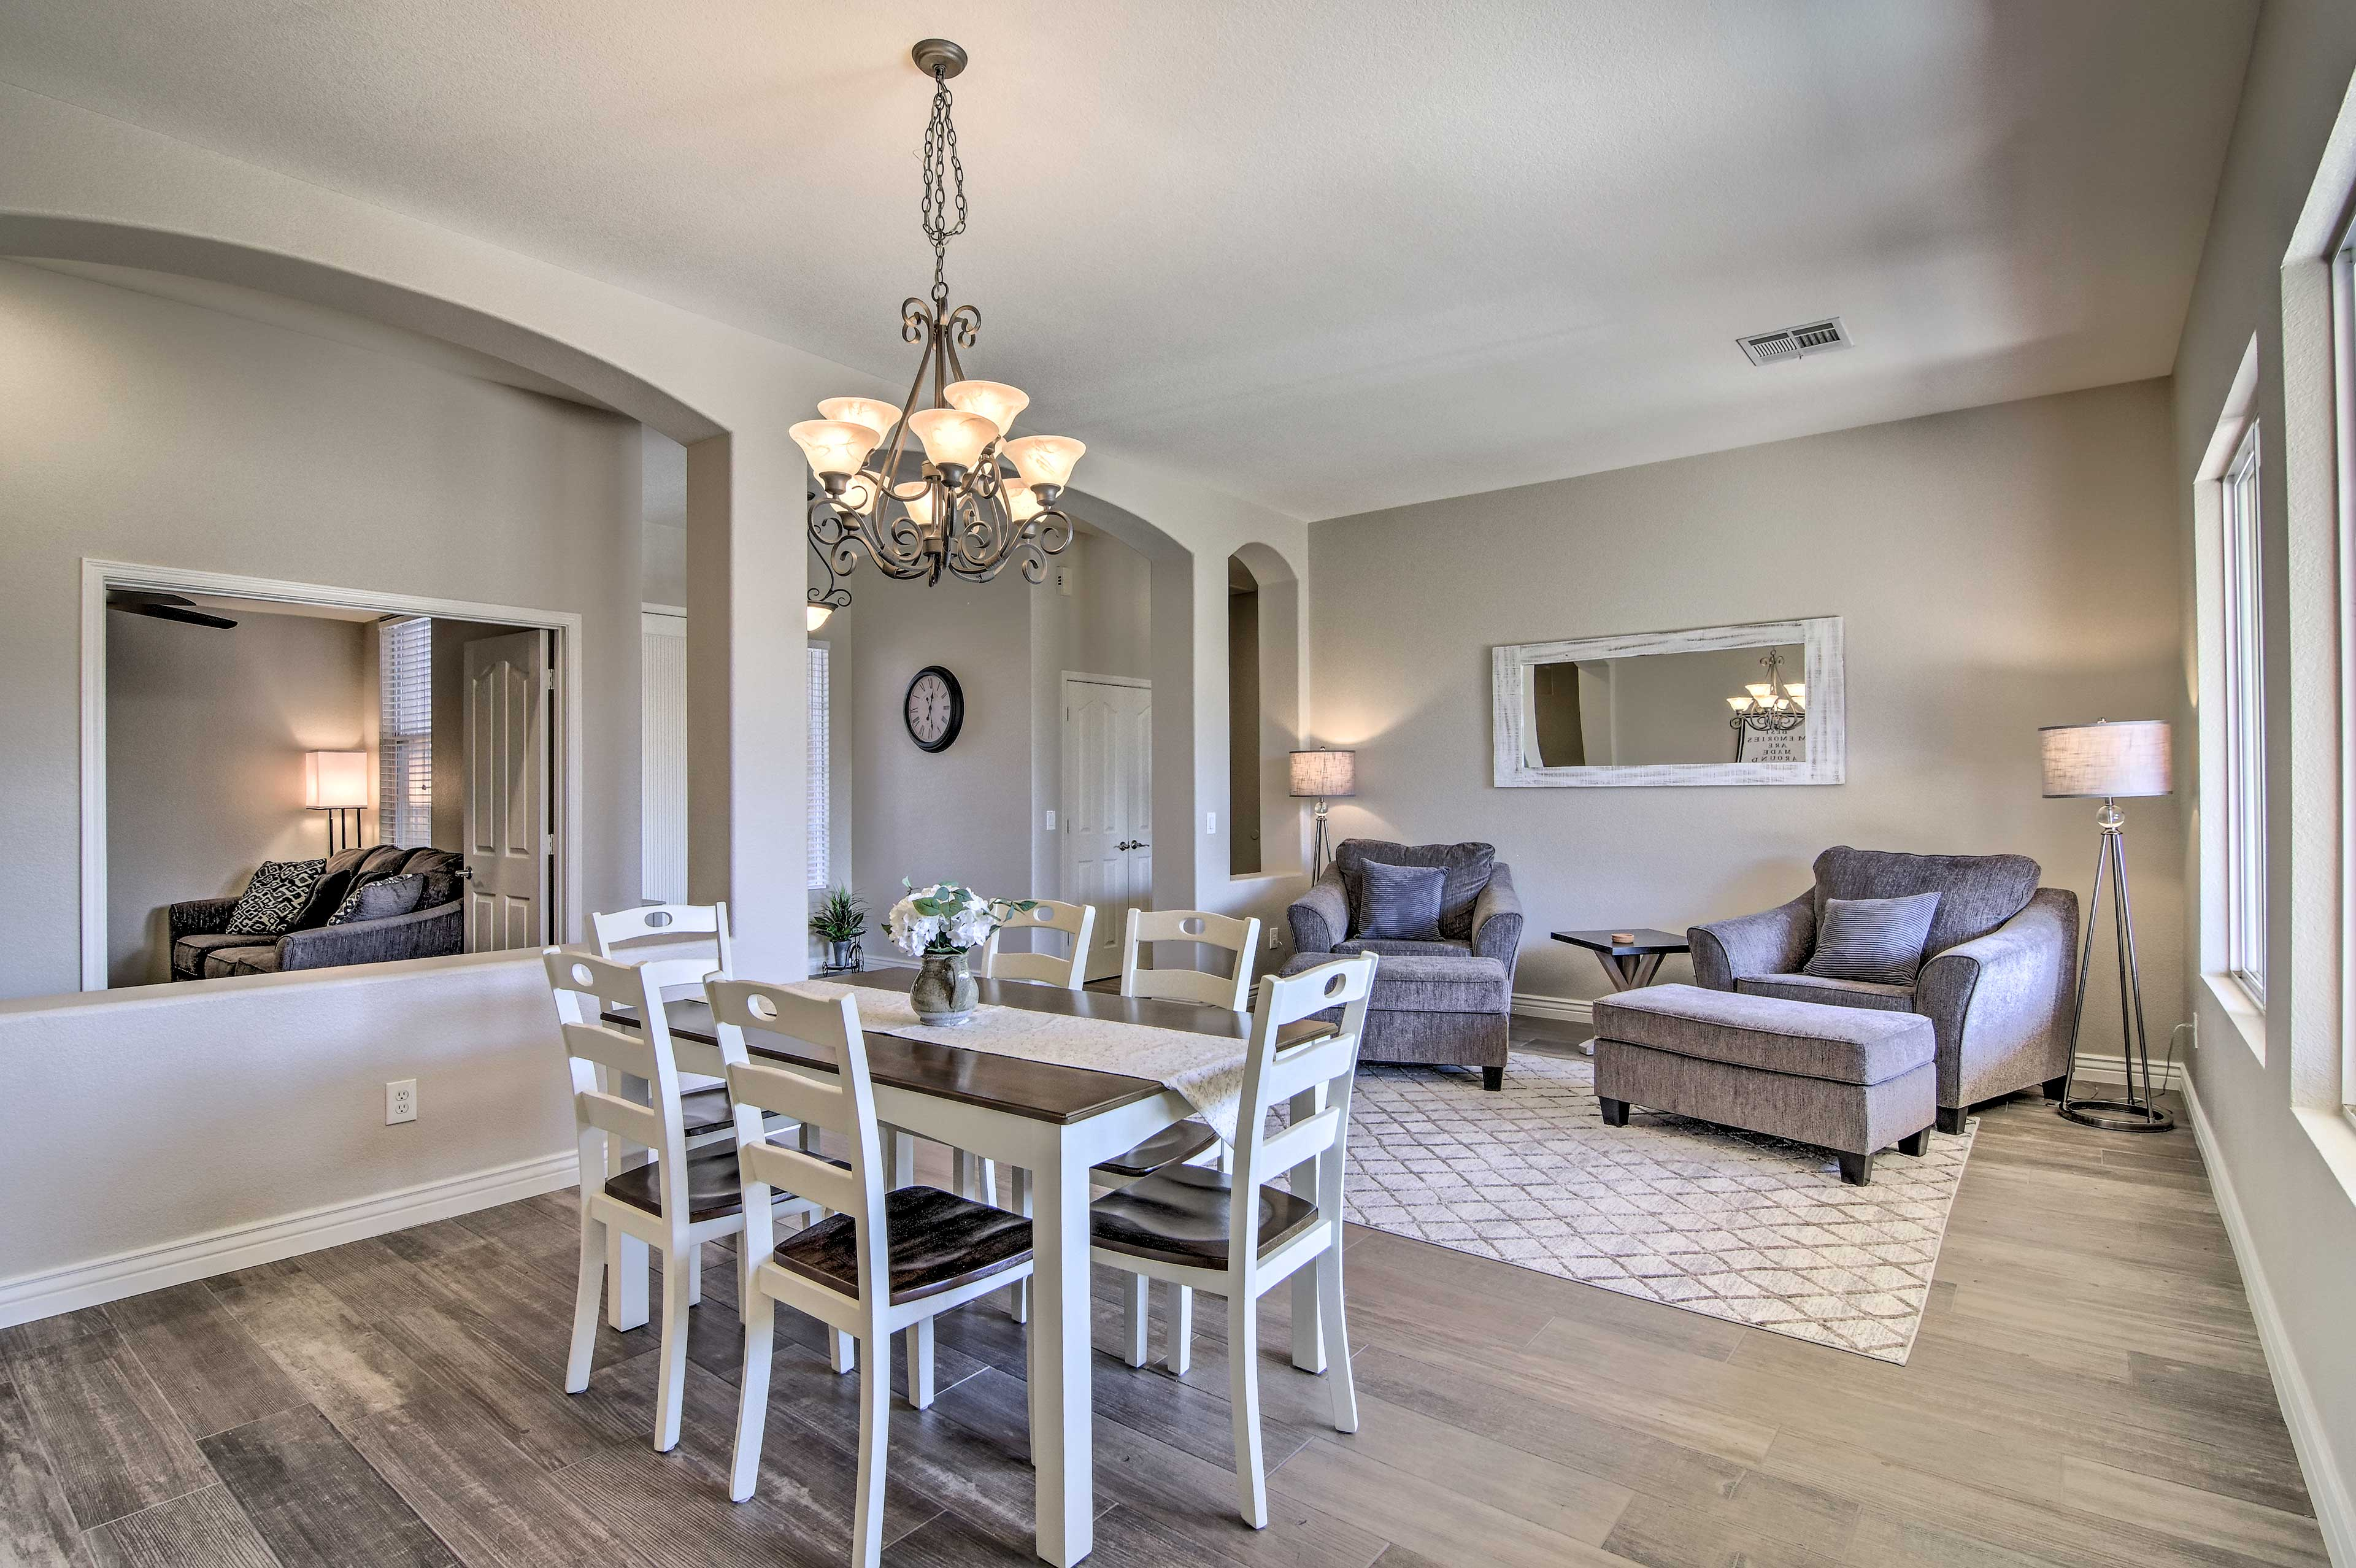 With multiple living rooms and a dining area, it'll feel like you're at home!